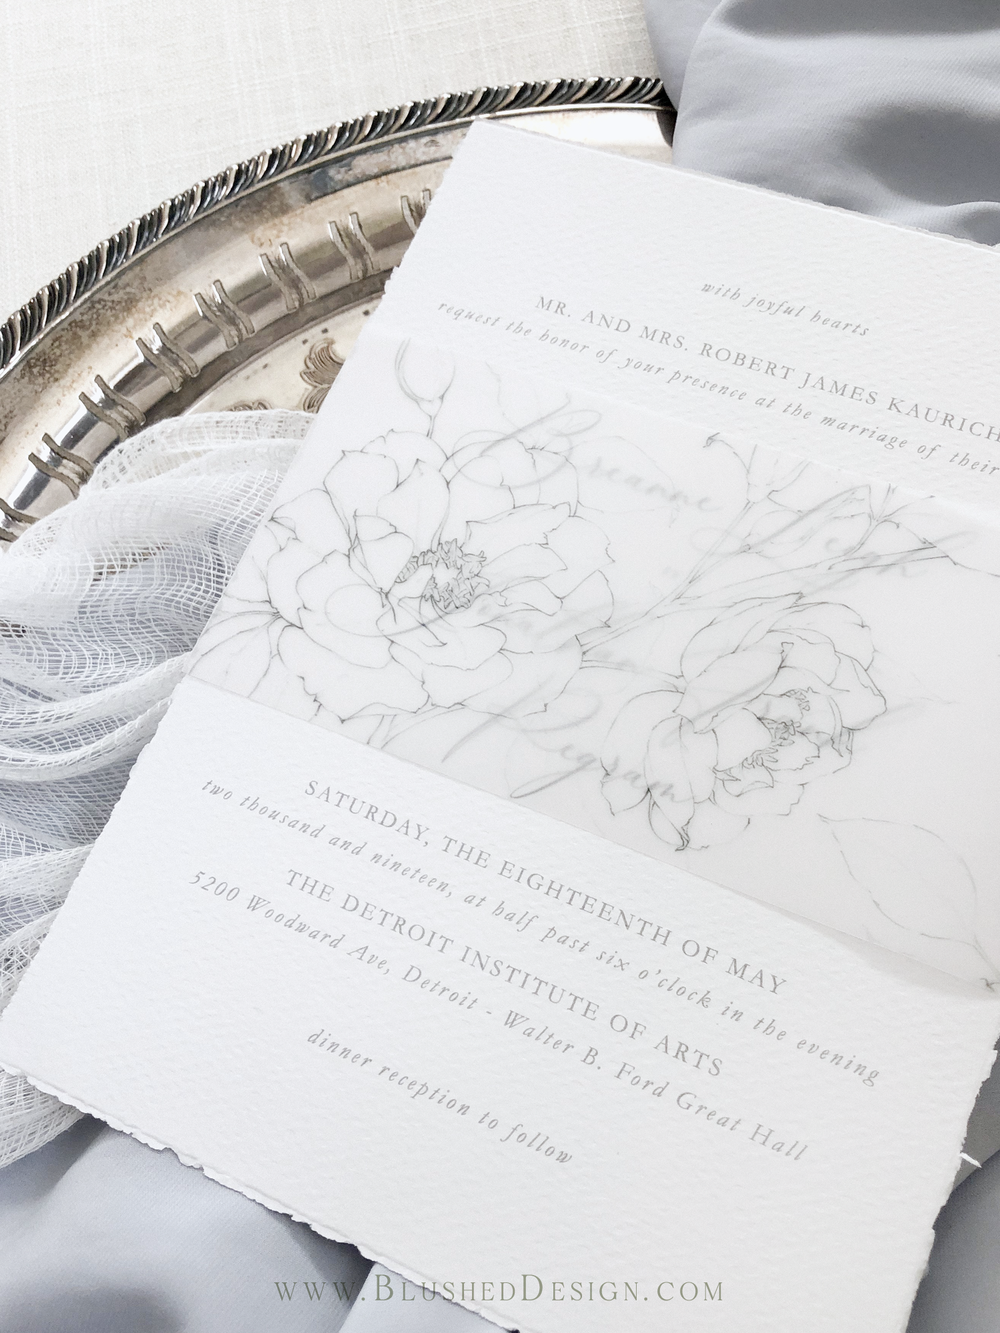 Beautiful vellum wedding invitations with a delicate garden rose illustration on it. #fineartweddinginvitations #vellumweddinginvitations